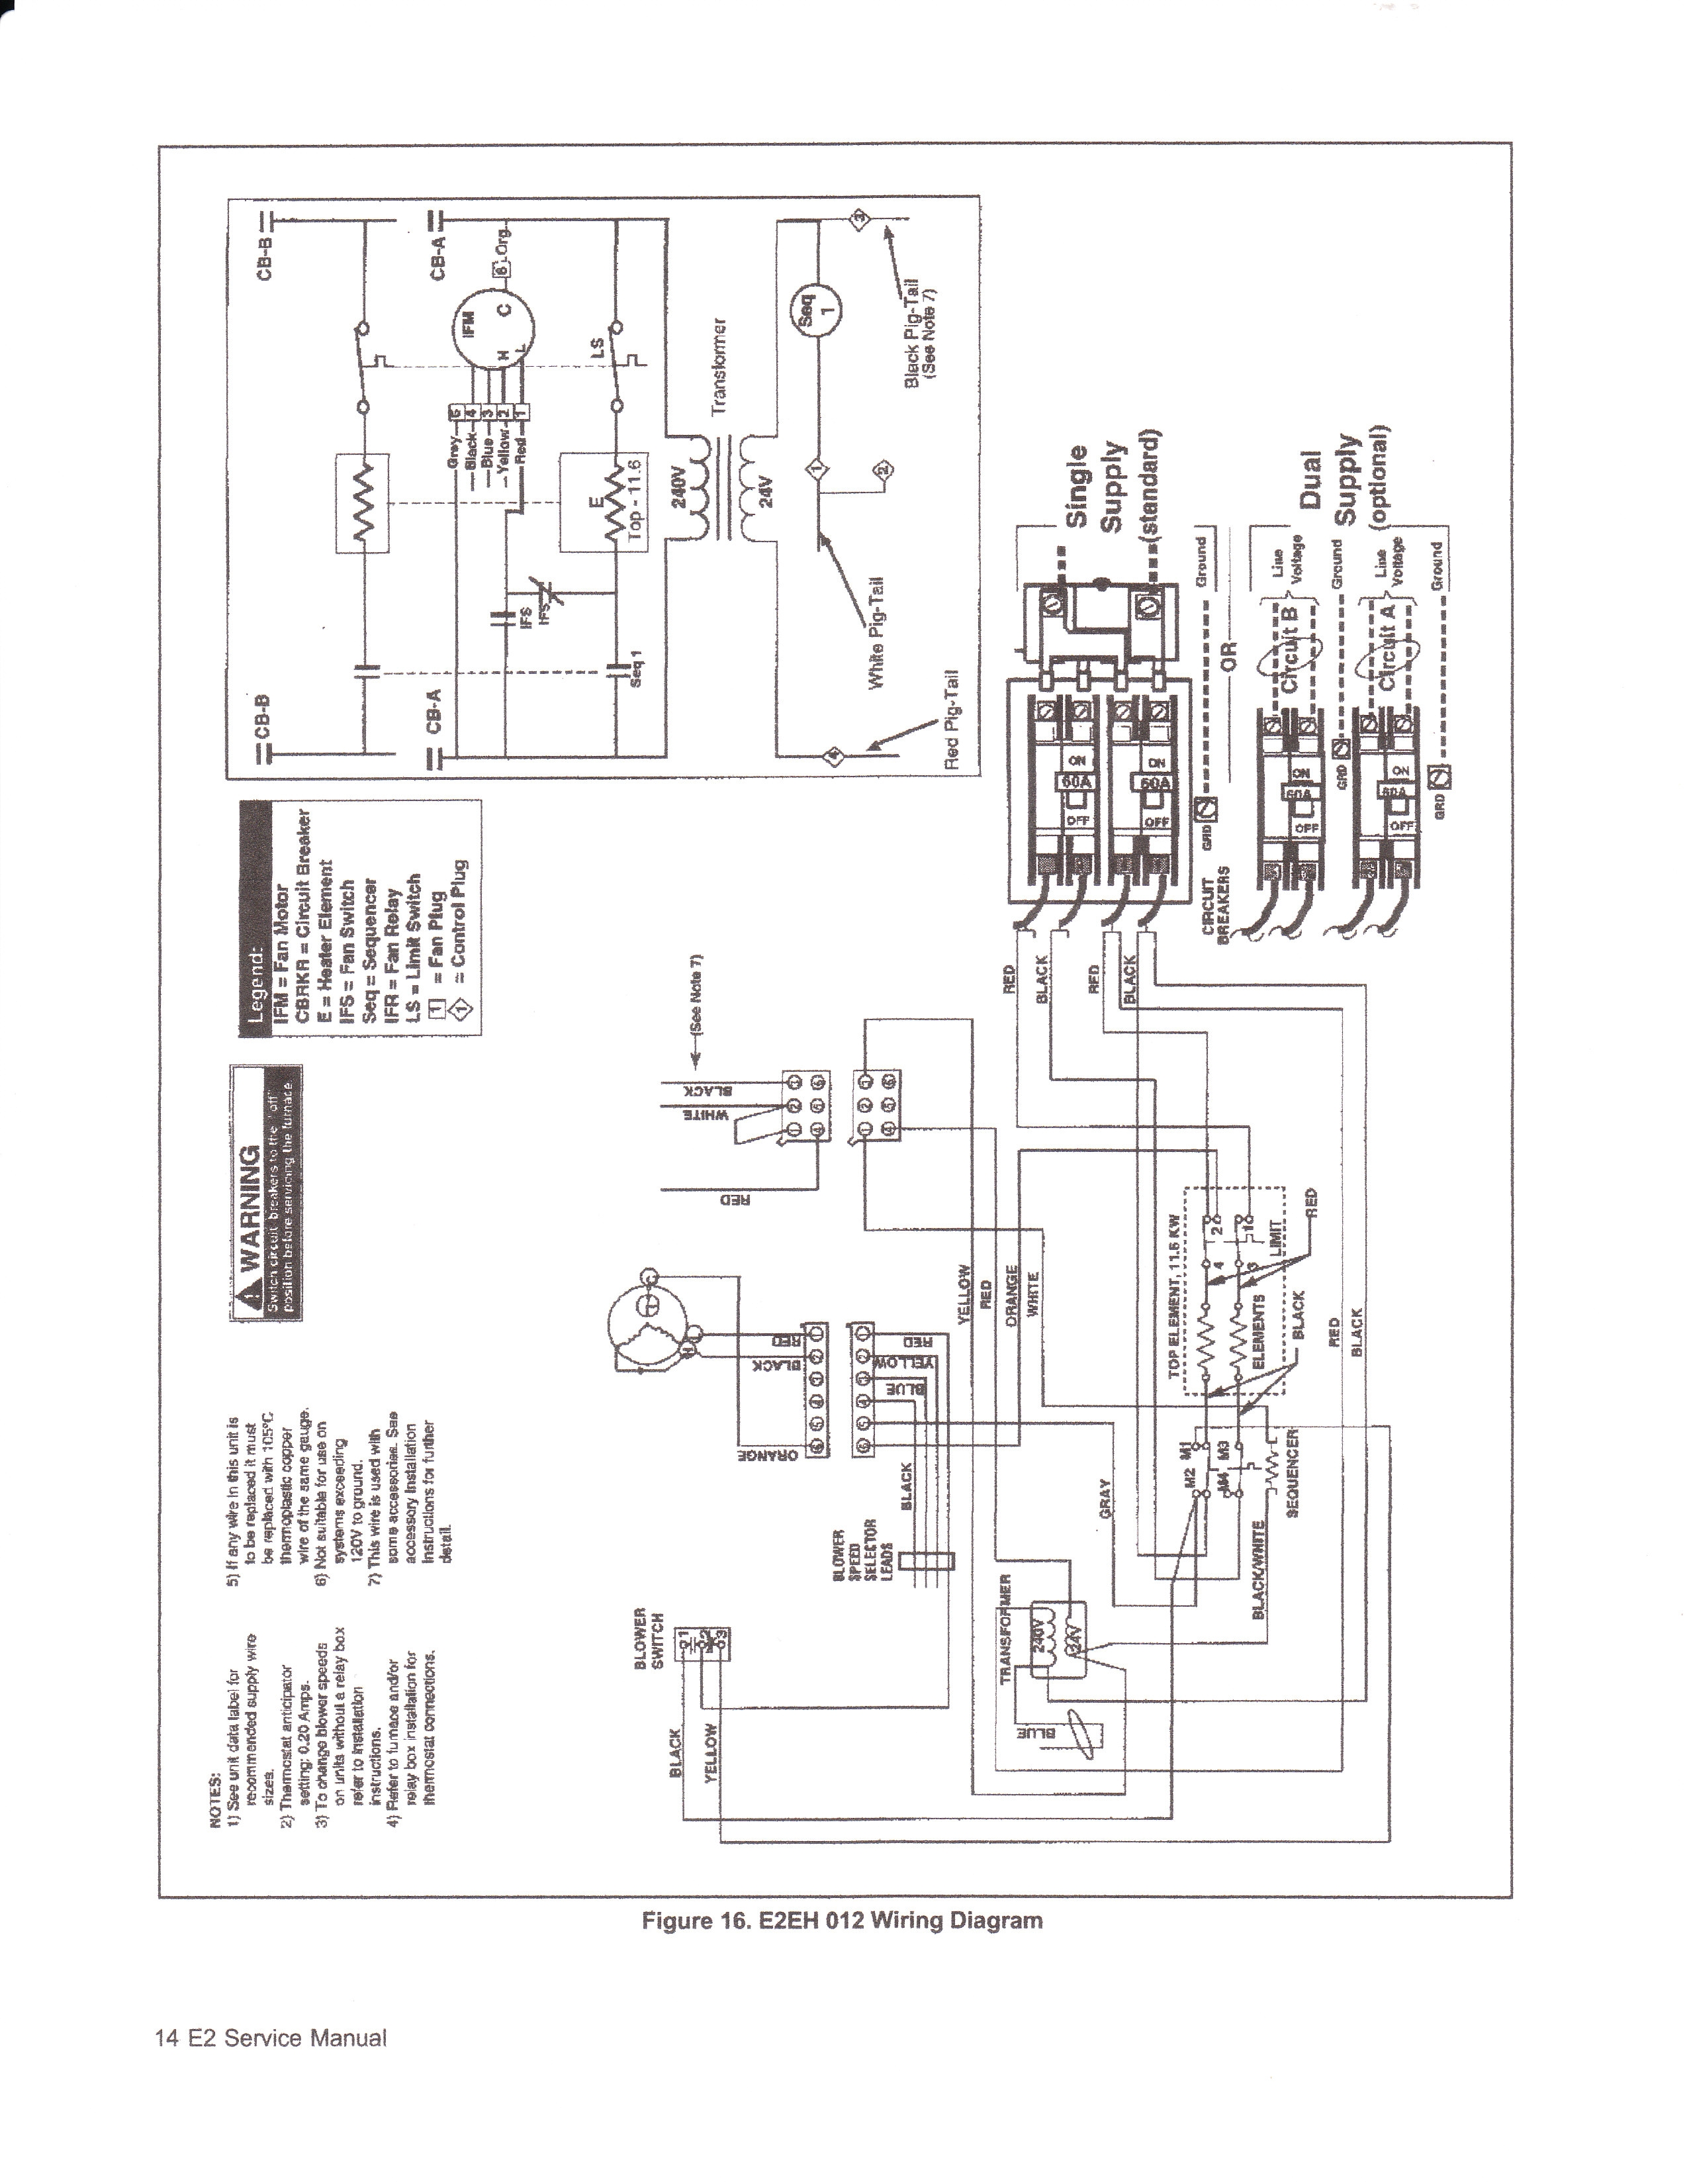 electrical wiring diagrams made easy